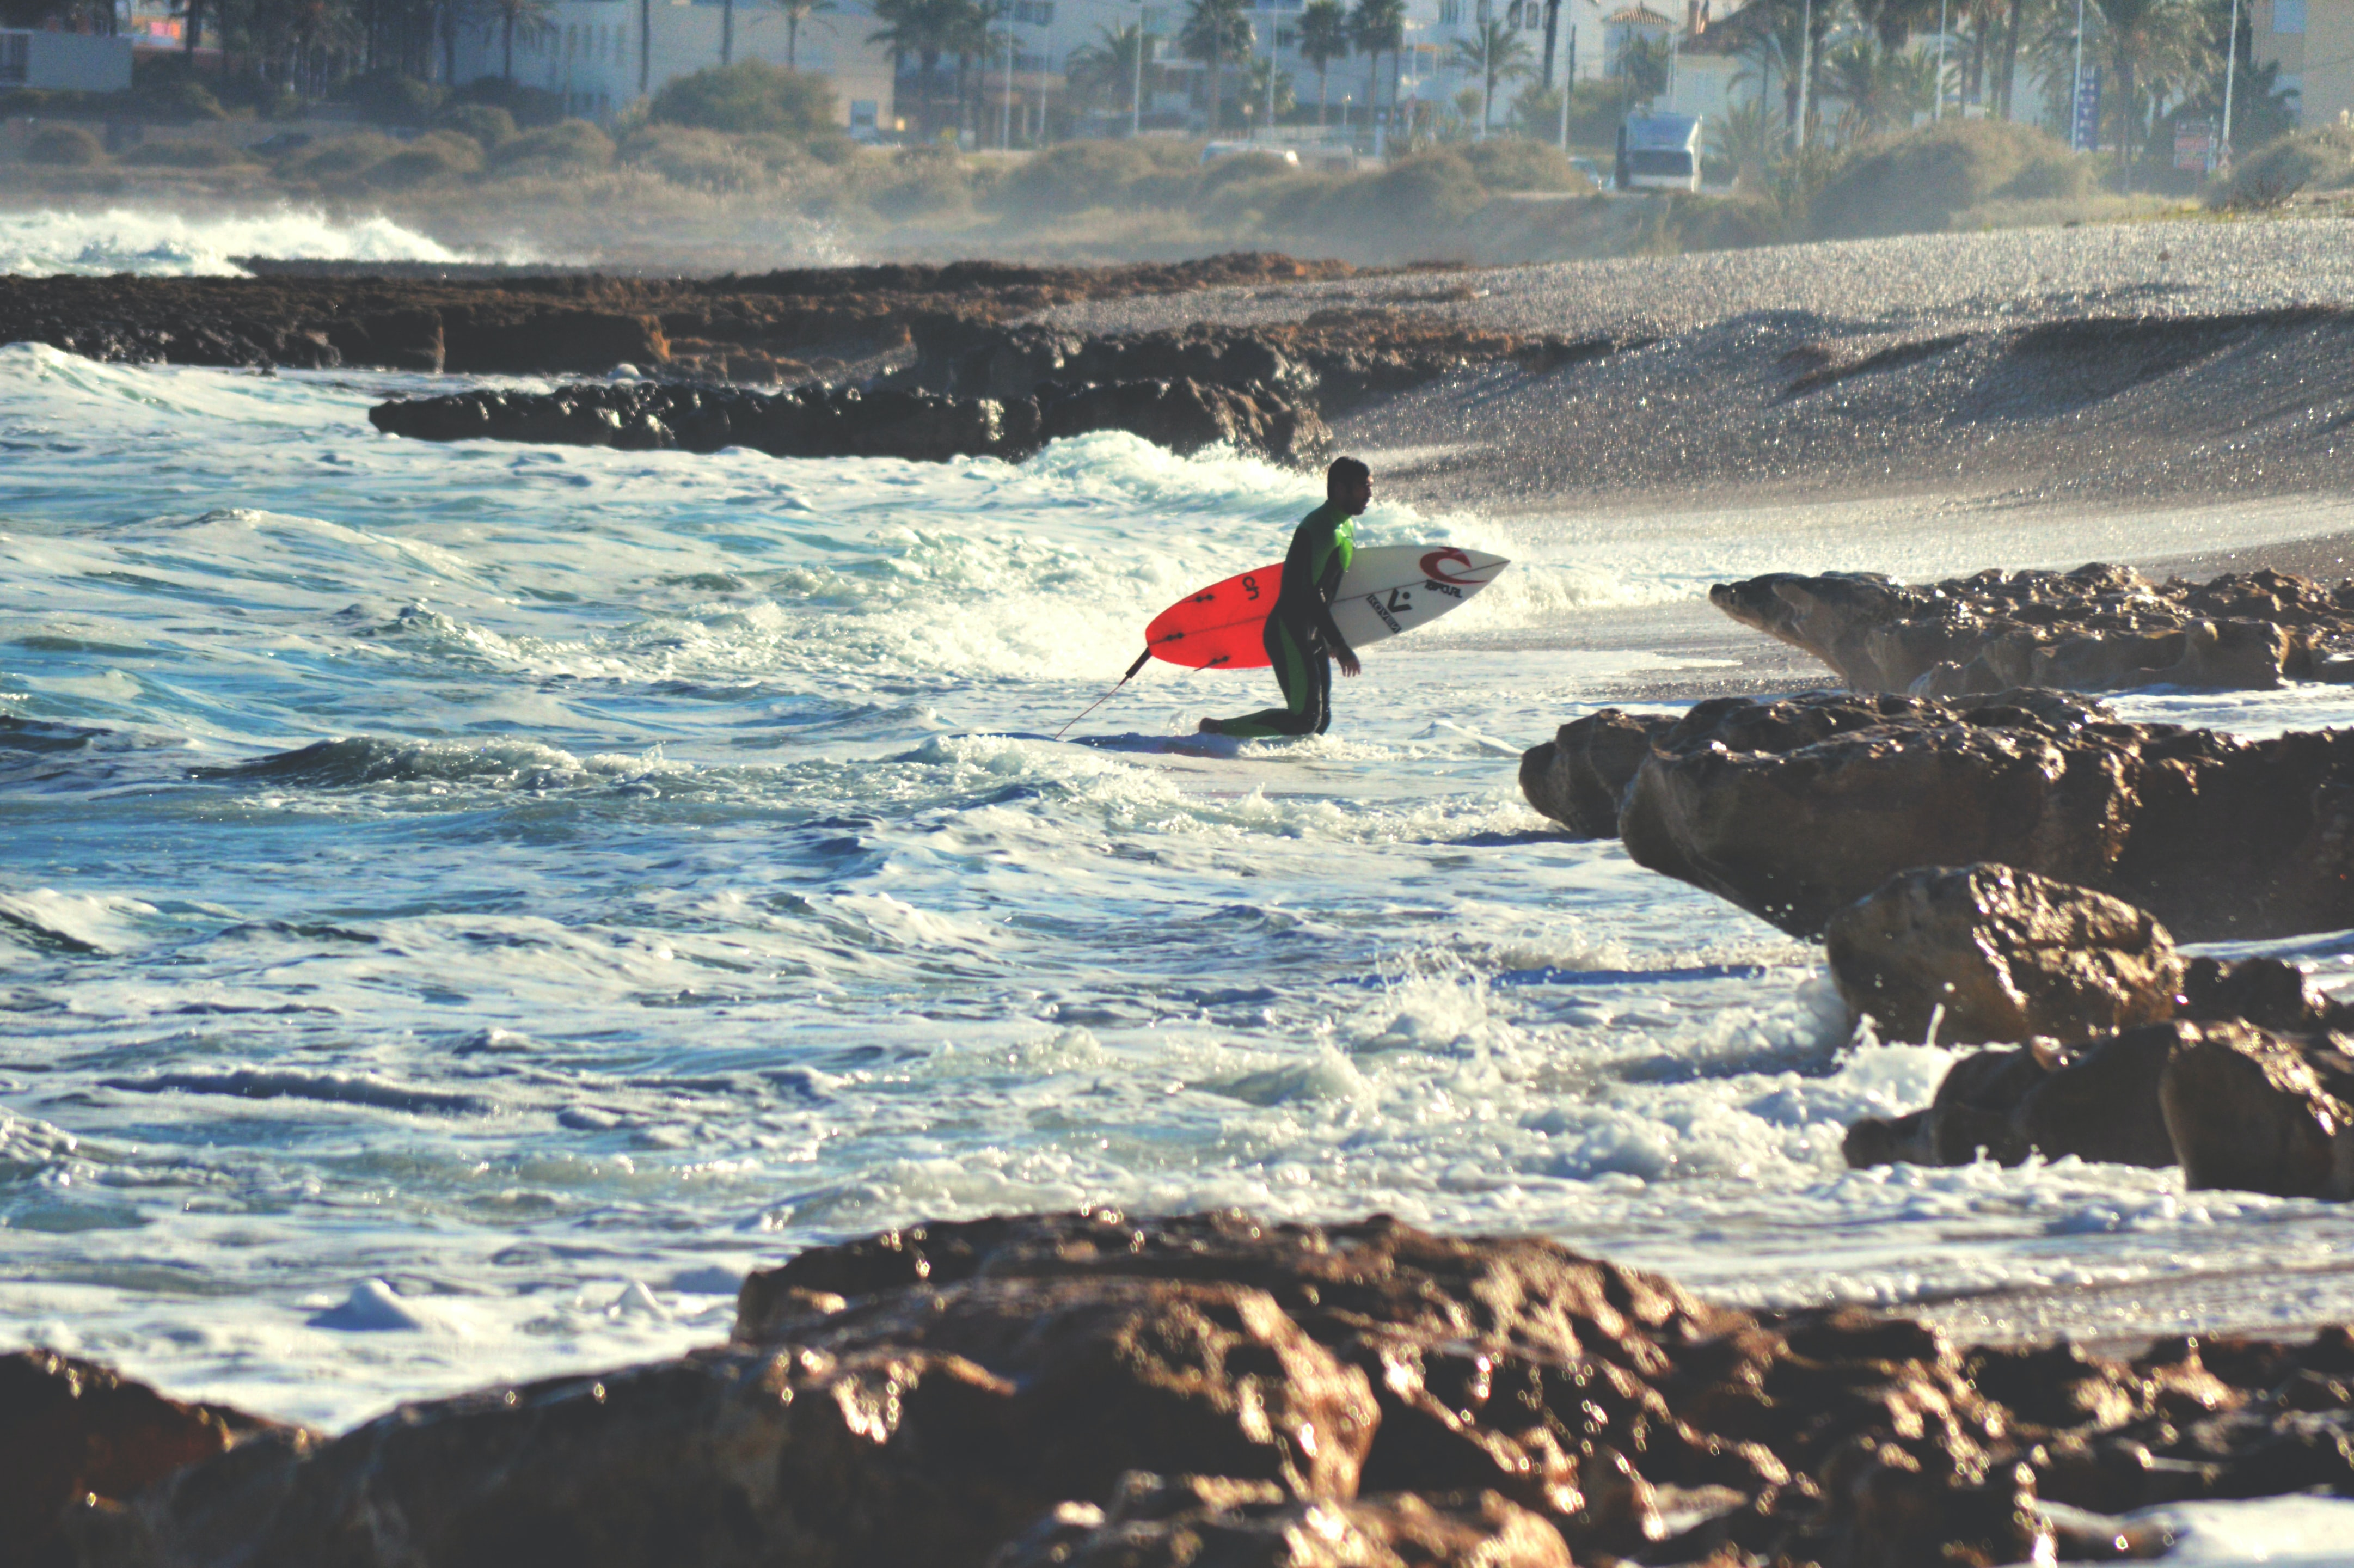 A guy standing in the rocky sea holding a surfboard in the ocean